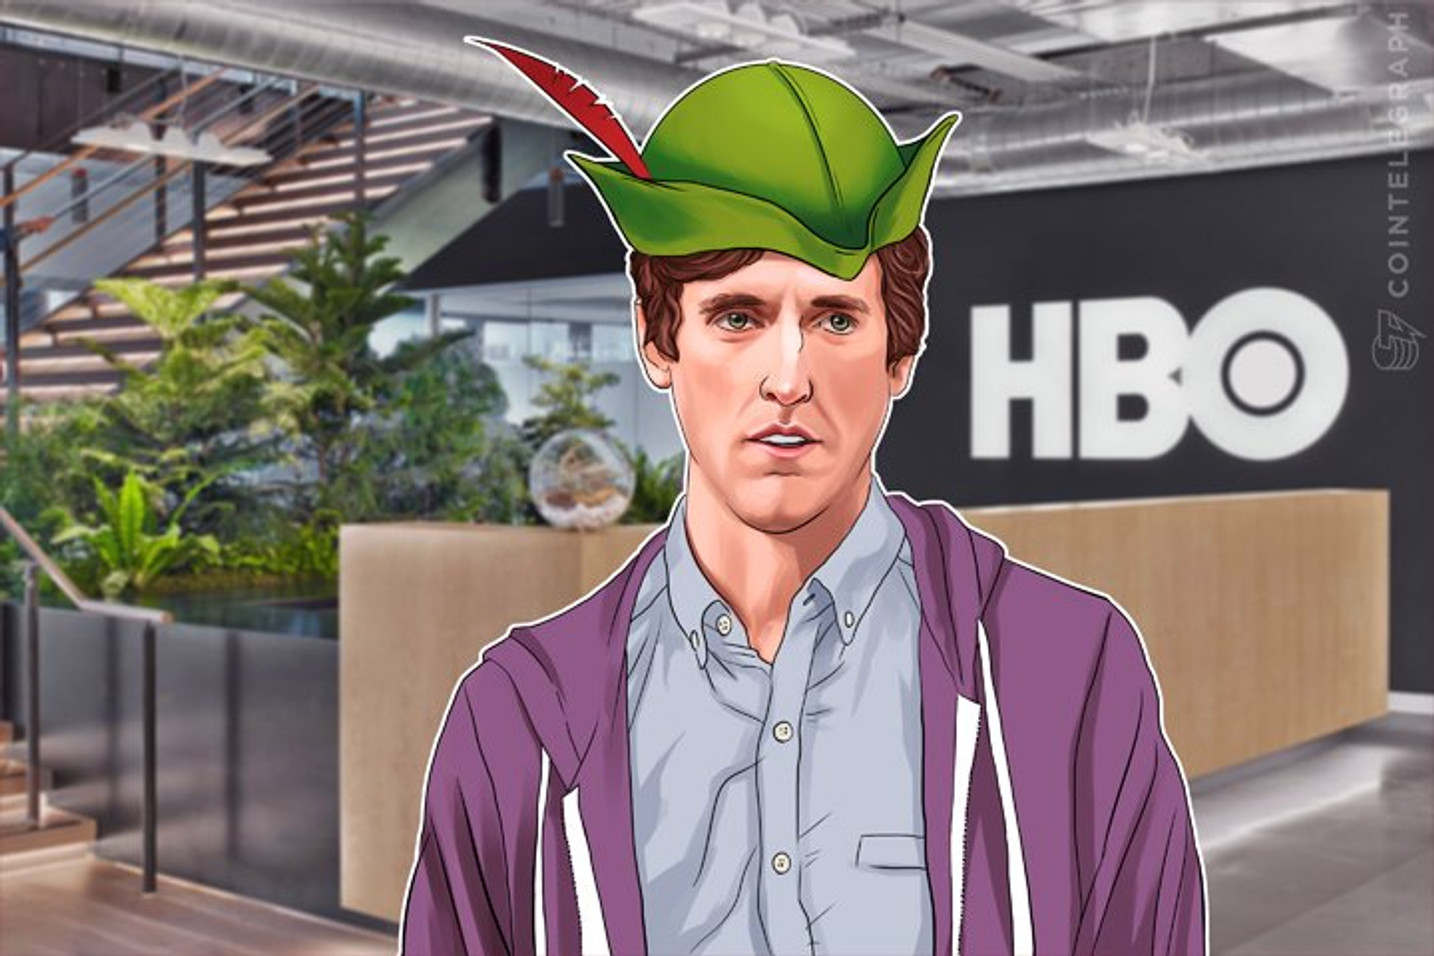 Sitcom Silicon Valley's Pied Piper is Now Real Thing Thanks to Blockchain